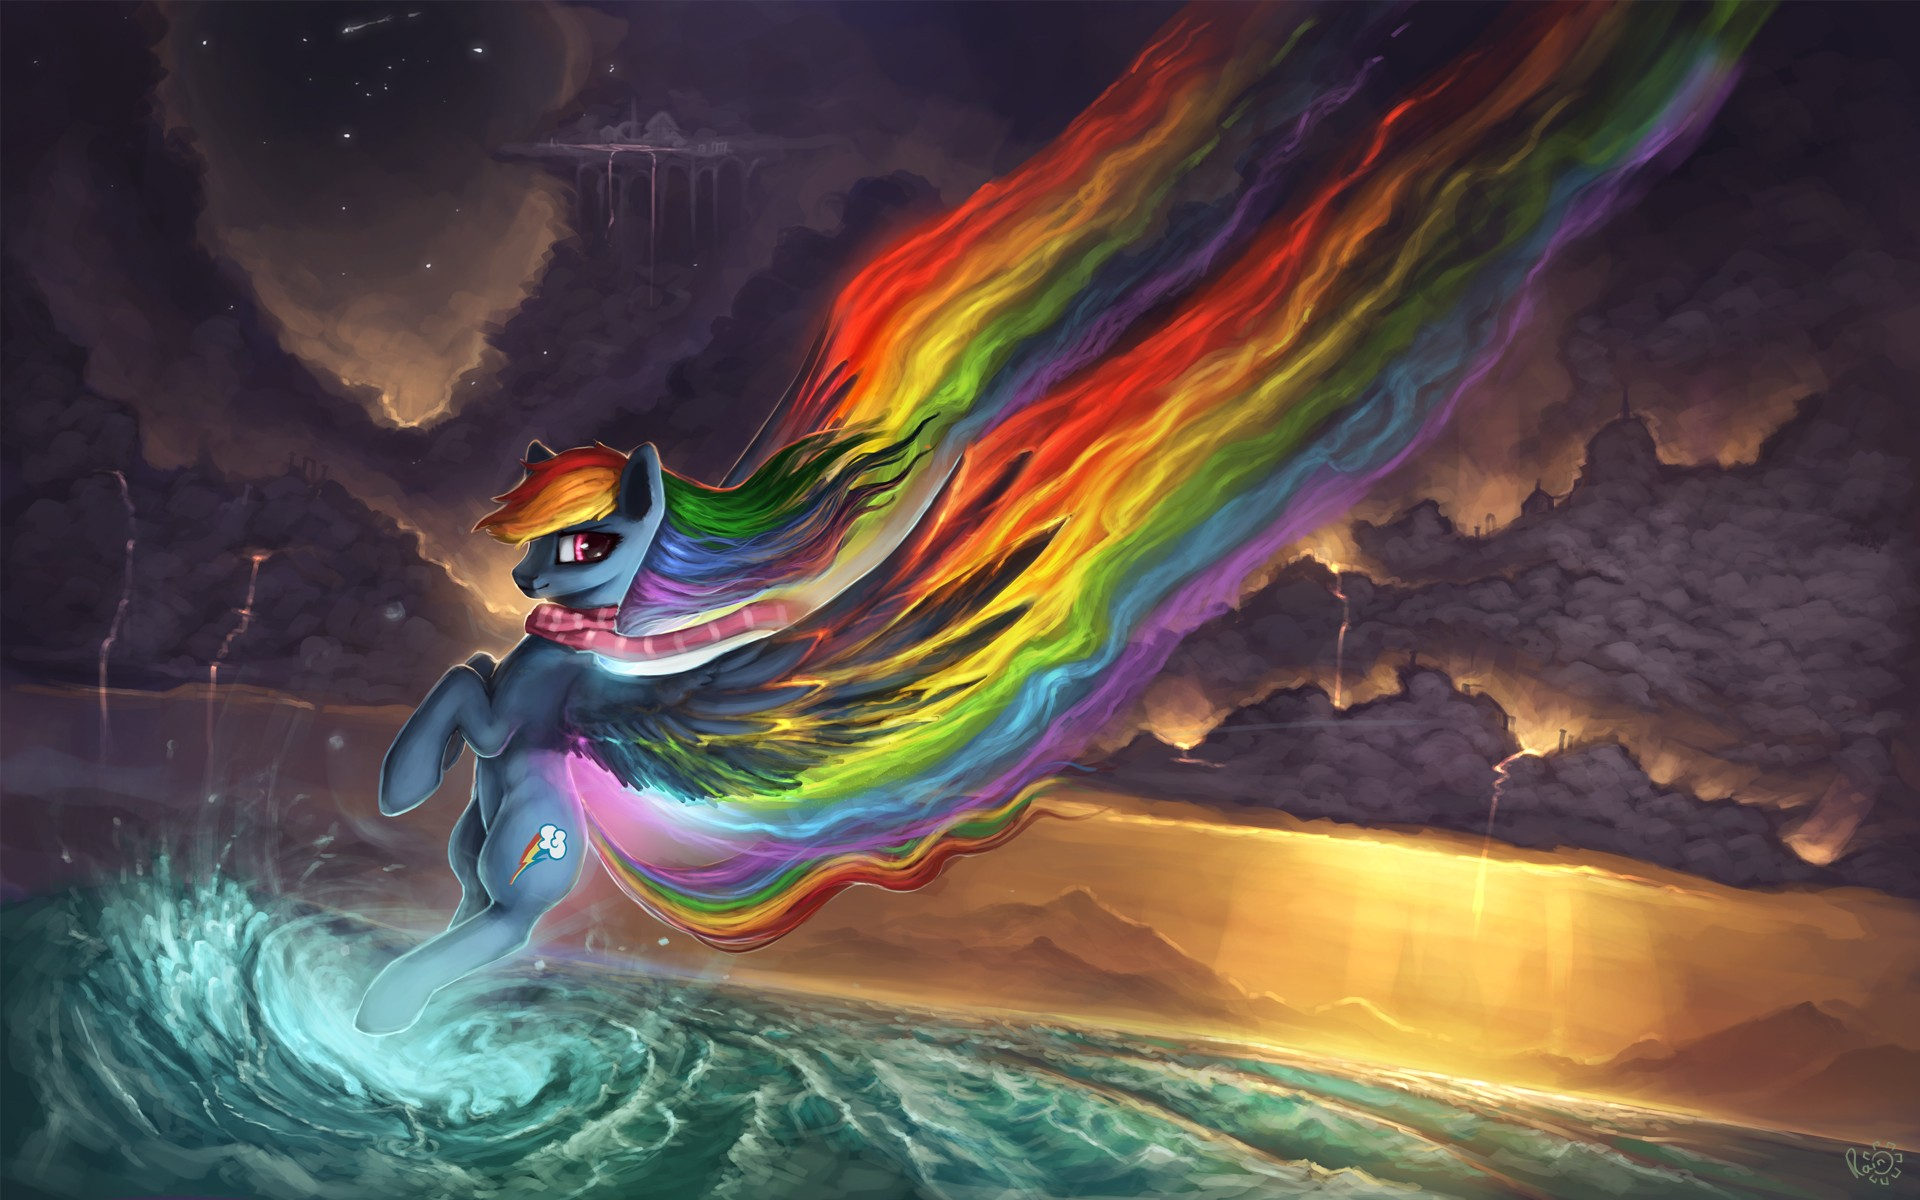 Creature 3d Movie Wallpaper Download My Little Pony Artwork Digital Art Rainbows Wallpapers